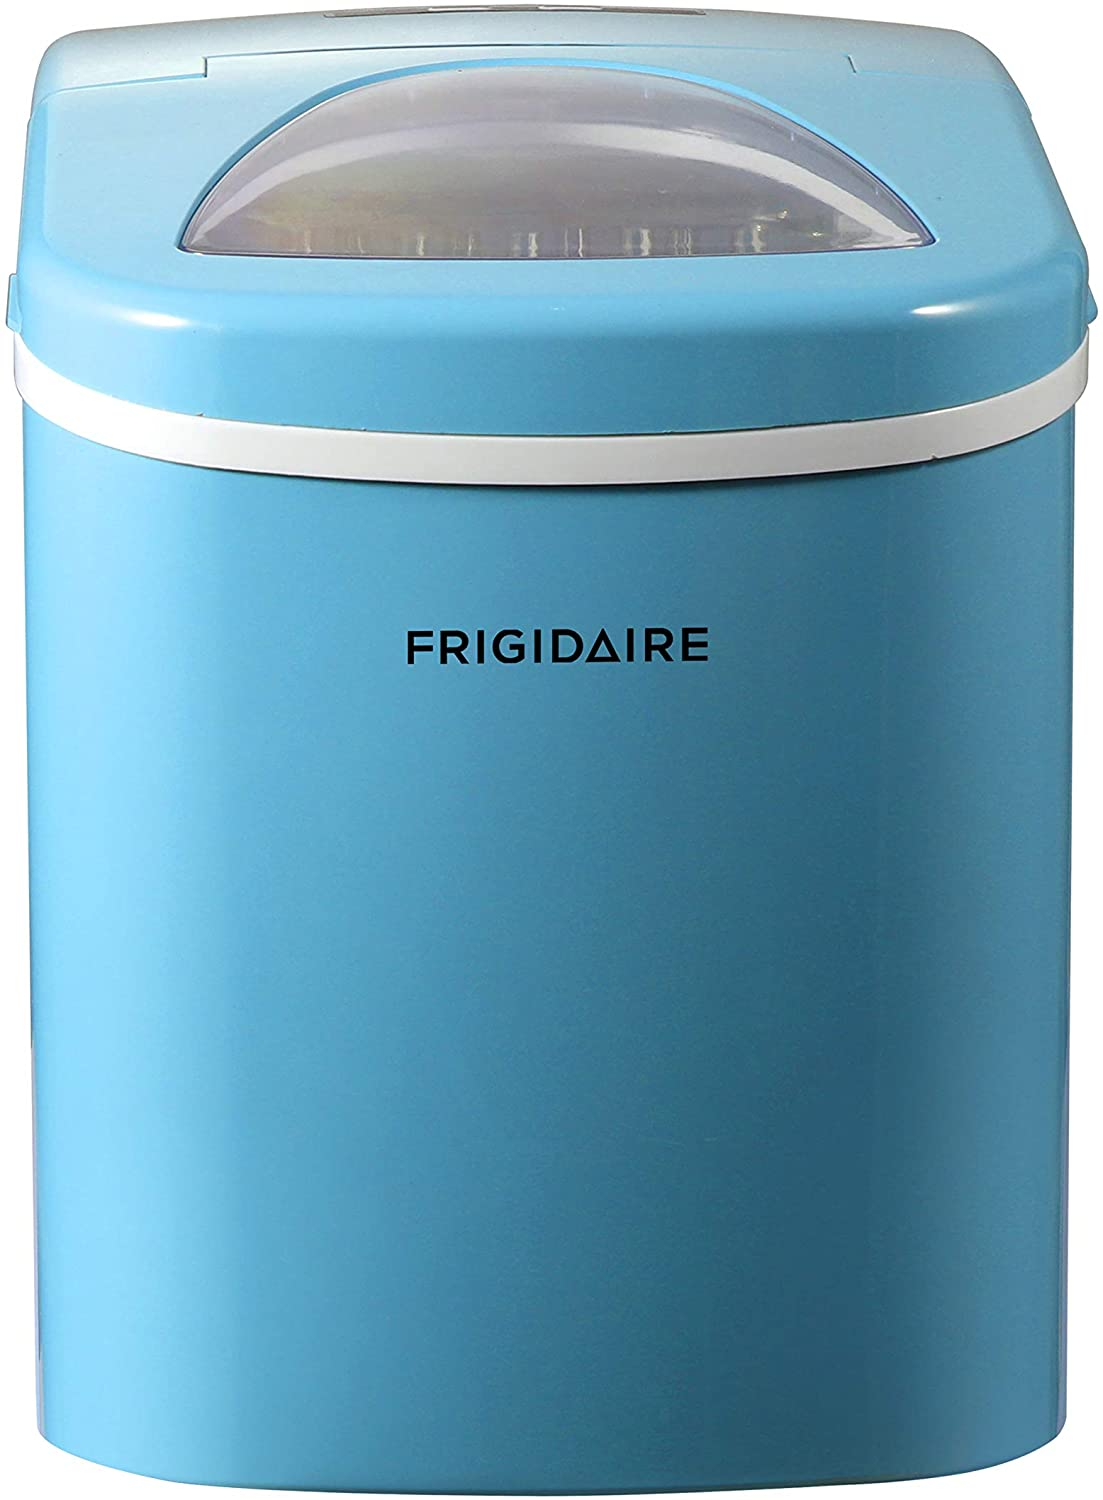 Frigidaire EFIC108 Compact Countertop Ice Maker